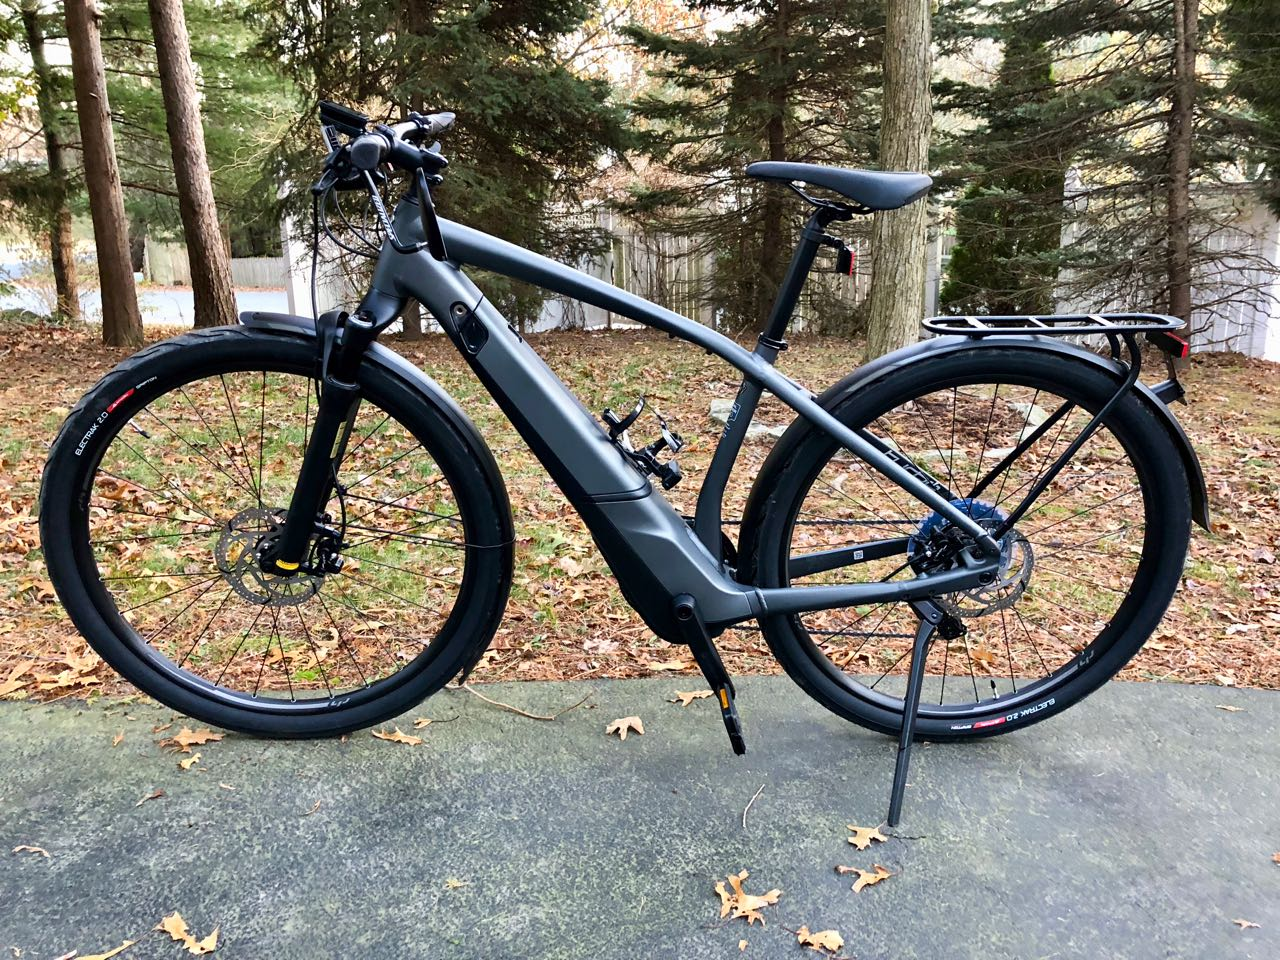 Specialized Turbo Electric Bike >> My Turbo Vado 6.0 is in! (Northern suburbs of Chicago) | Electric Bike Forum - Q&A, Help ...